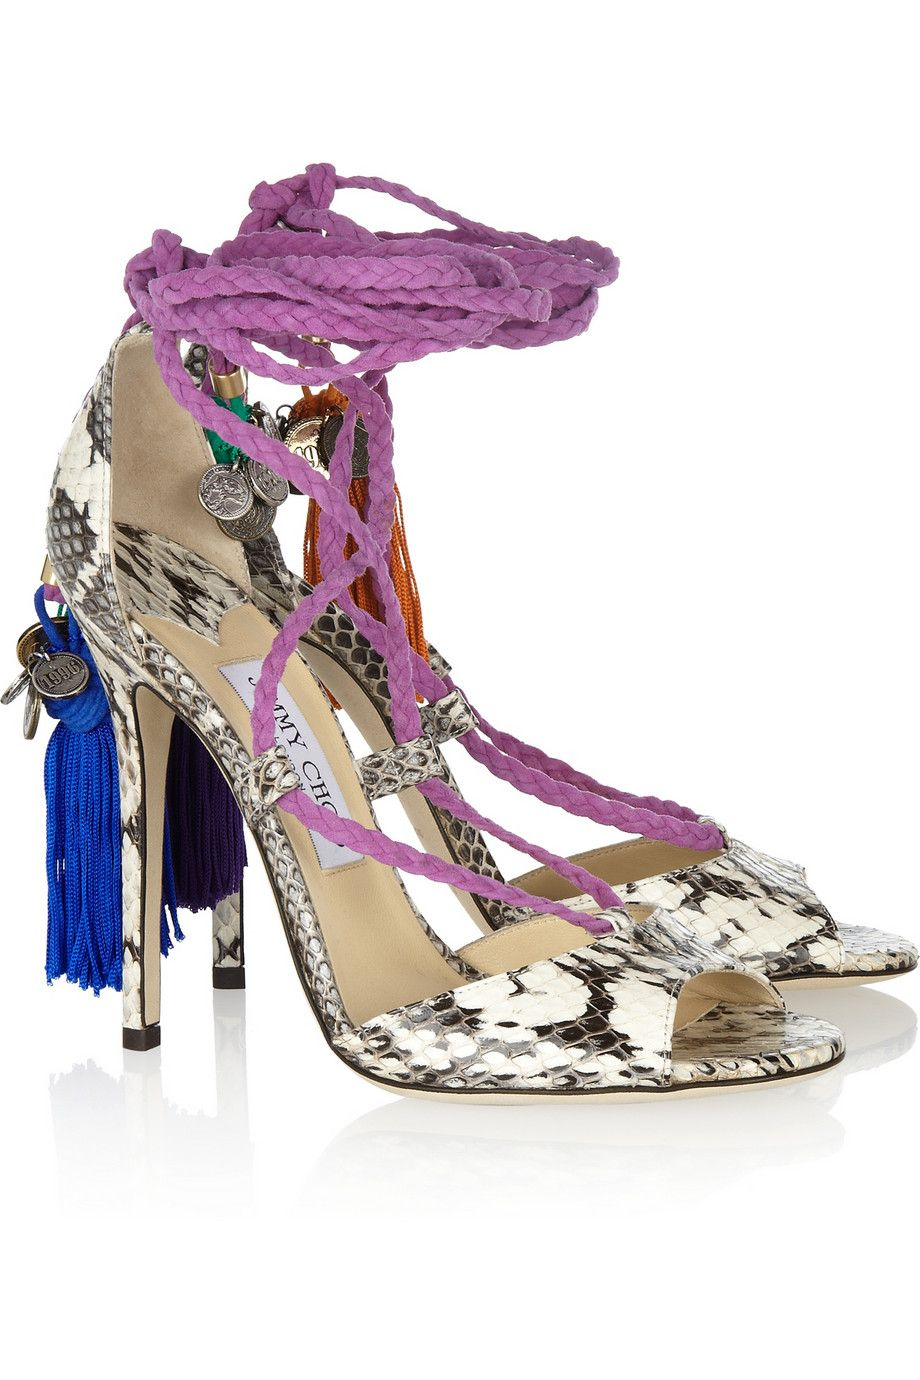 Jimmy Choo Dream rope-tie elaphe sandals [JC2013] - $216.60 : Discounted Christian Louboutin,Jimmy Choo,Valentino Shoes Online store